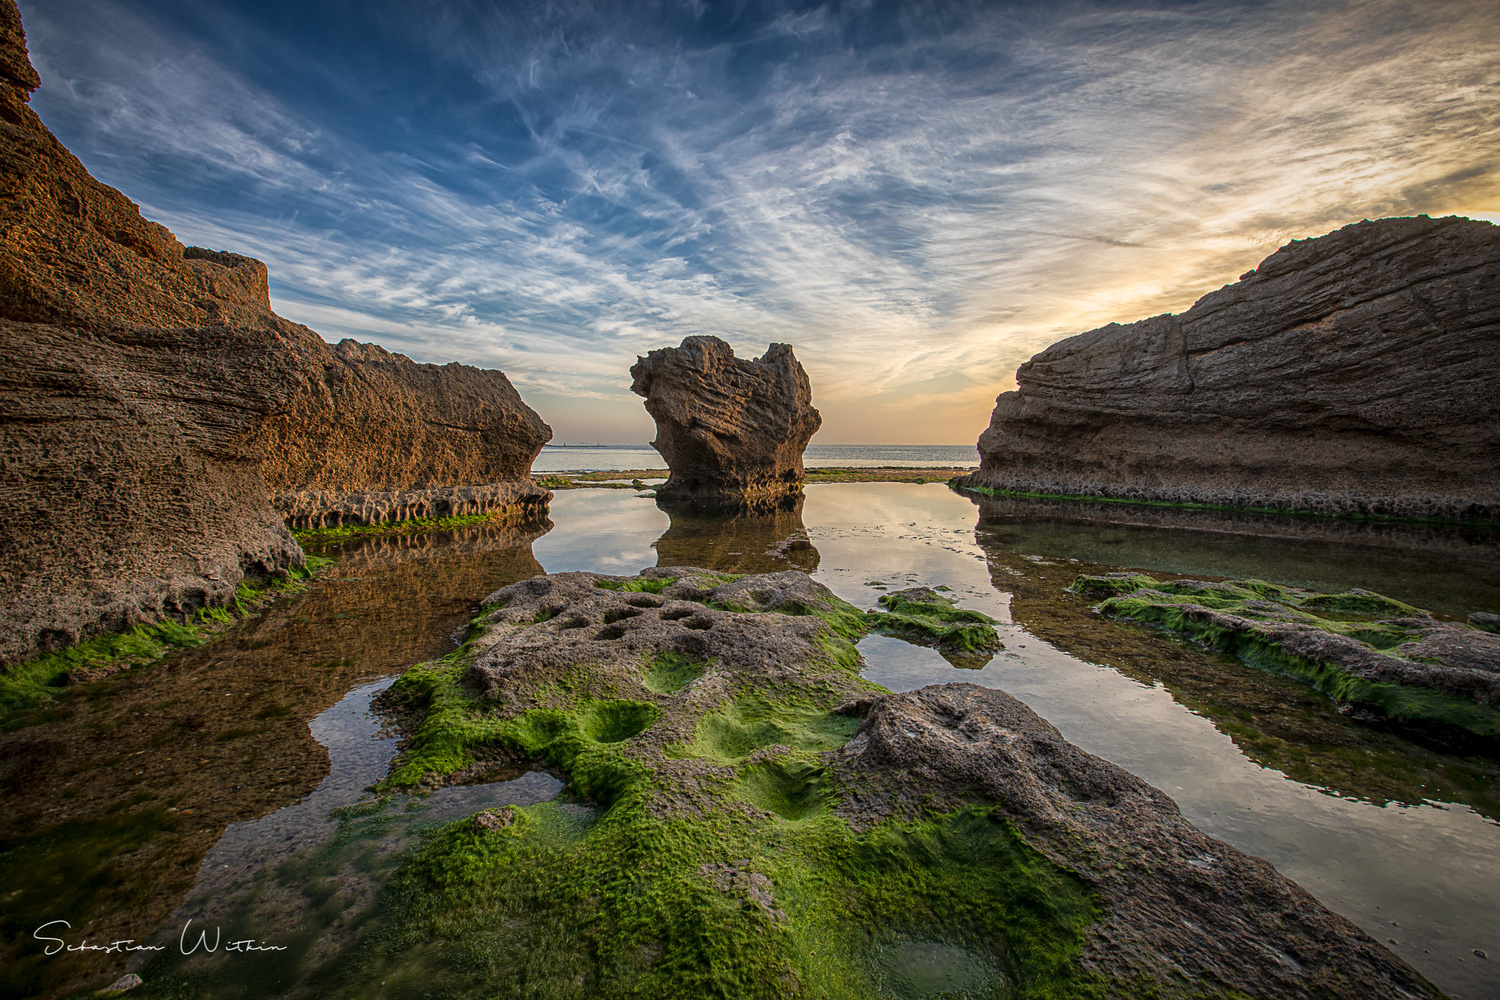 The Rock by Sebastian Witkin